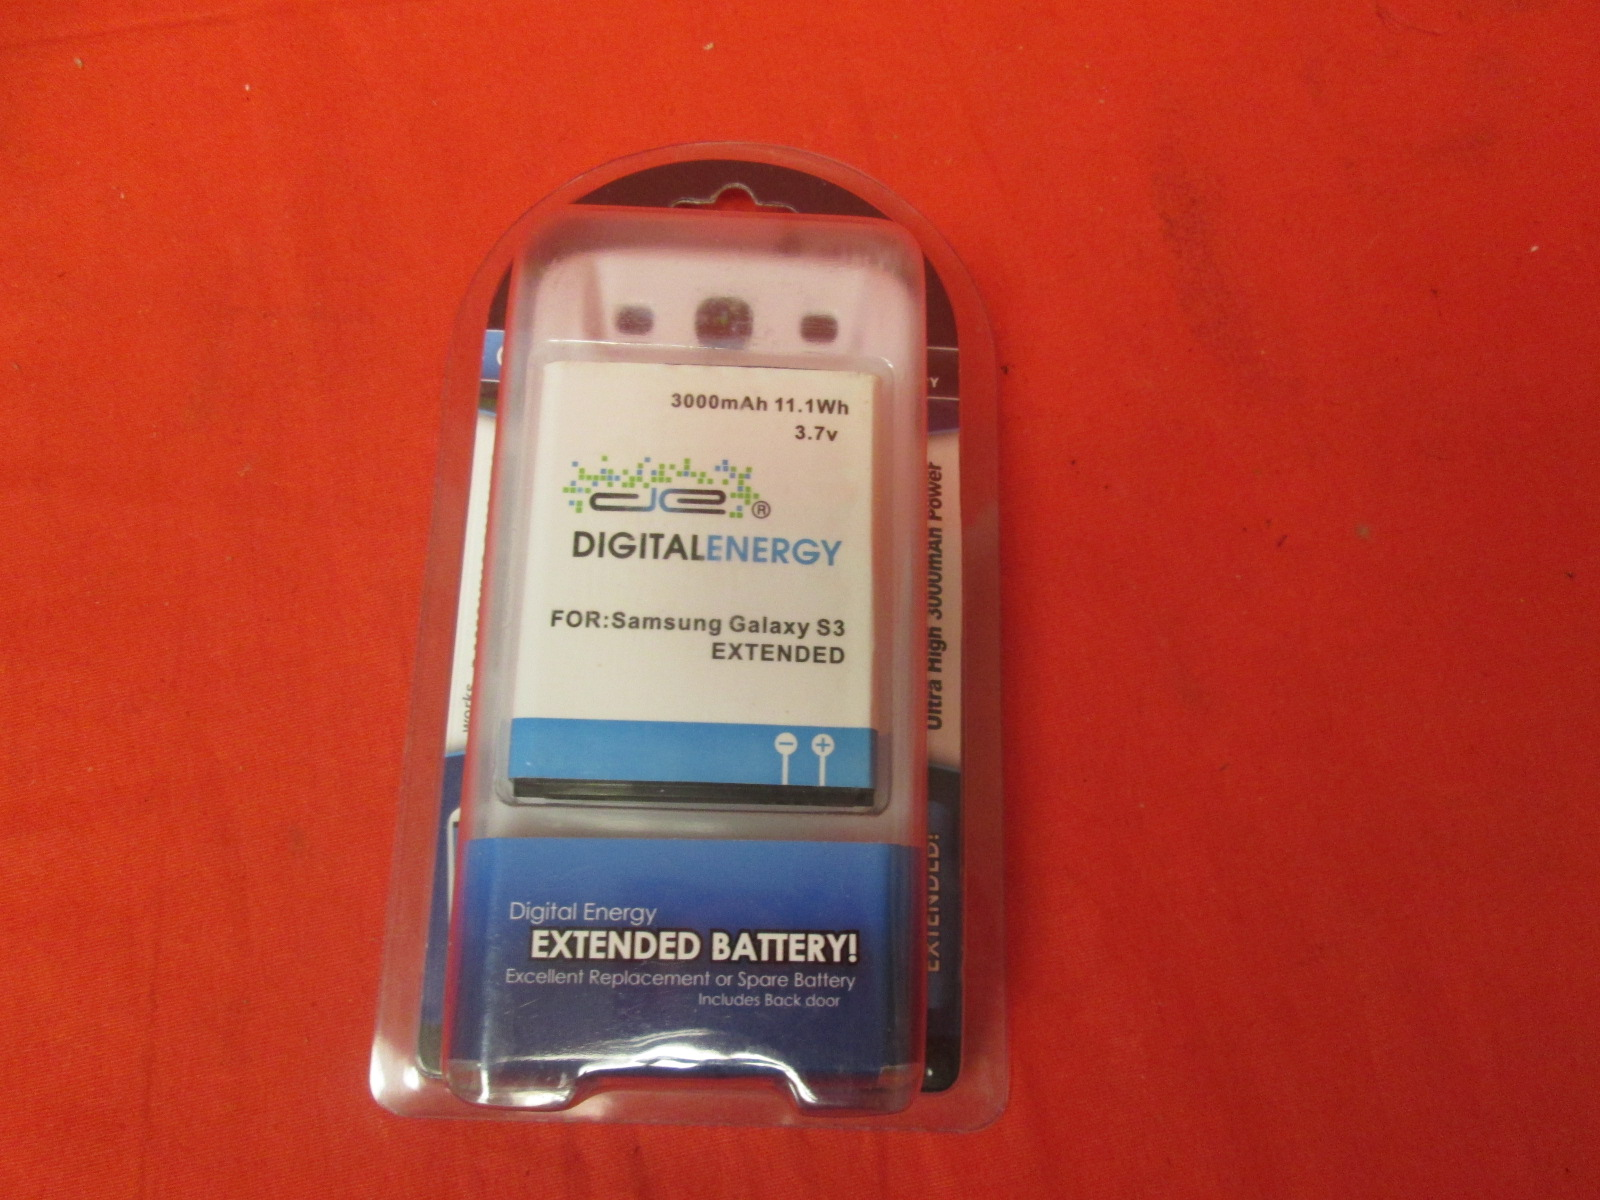 Digital Energy Samsung Galaxy S3 3000MAH Extended Battery